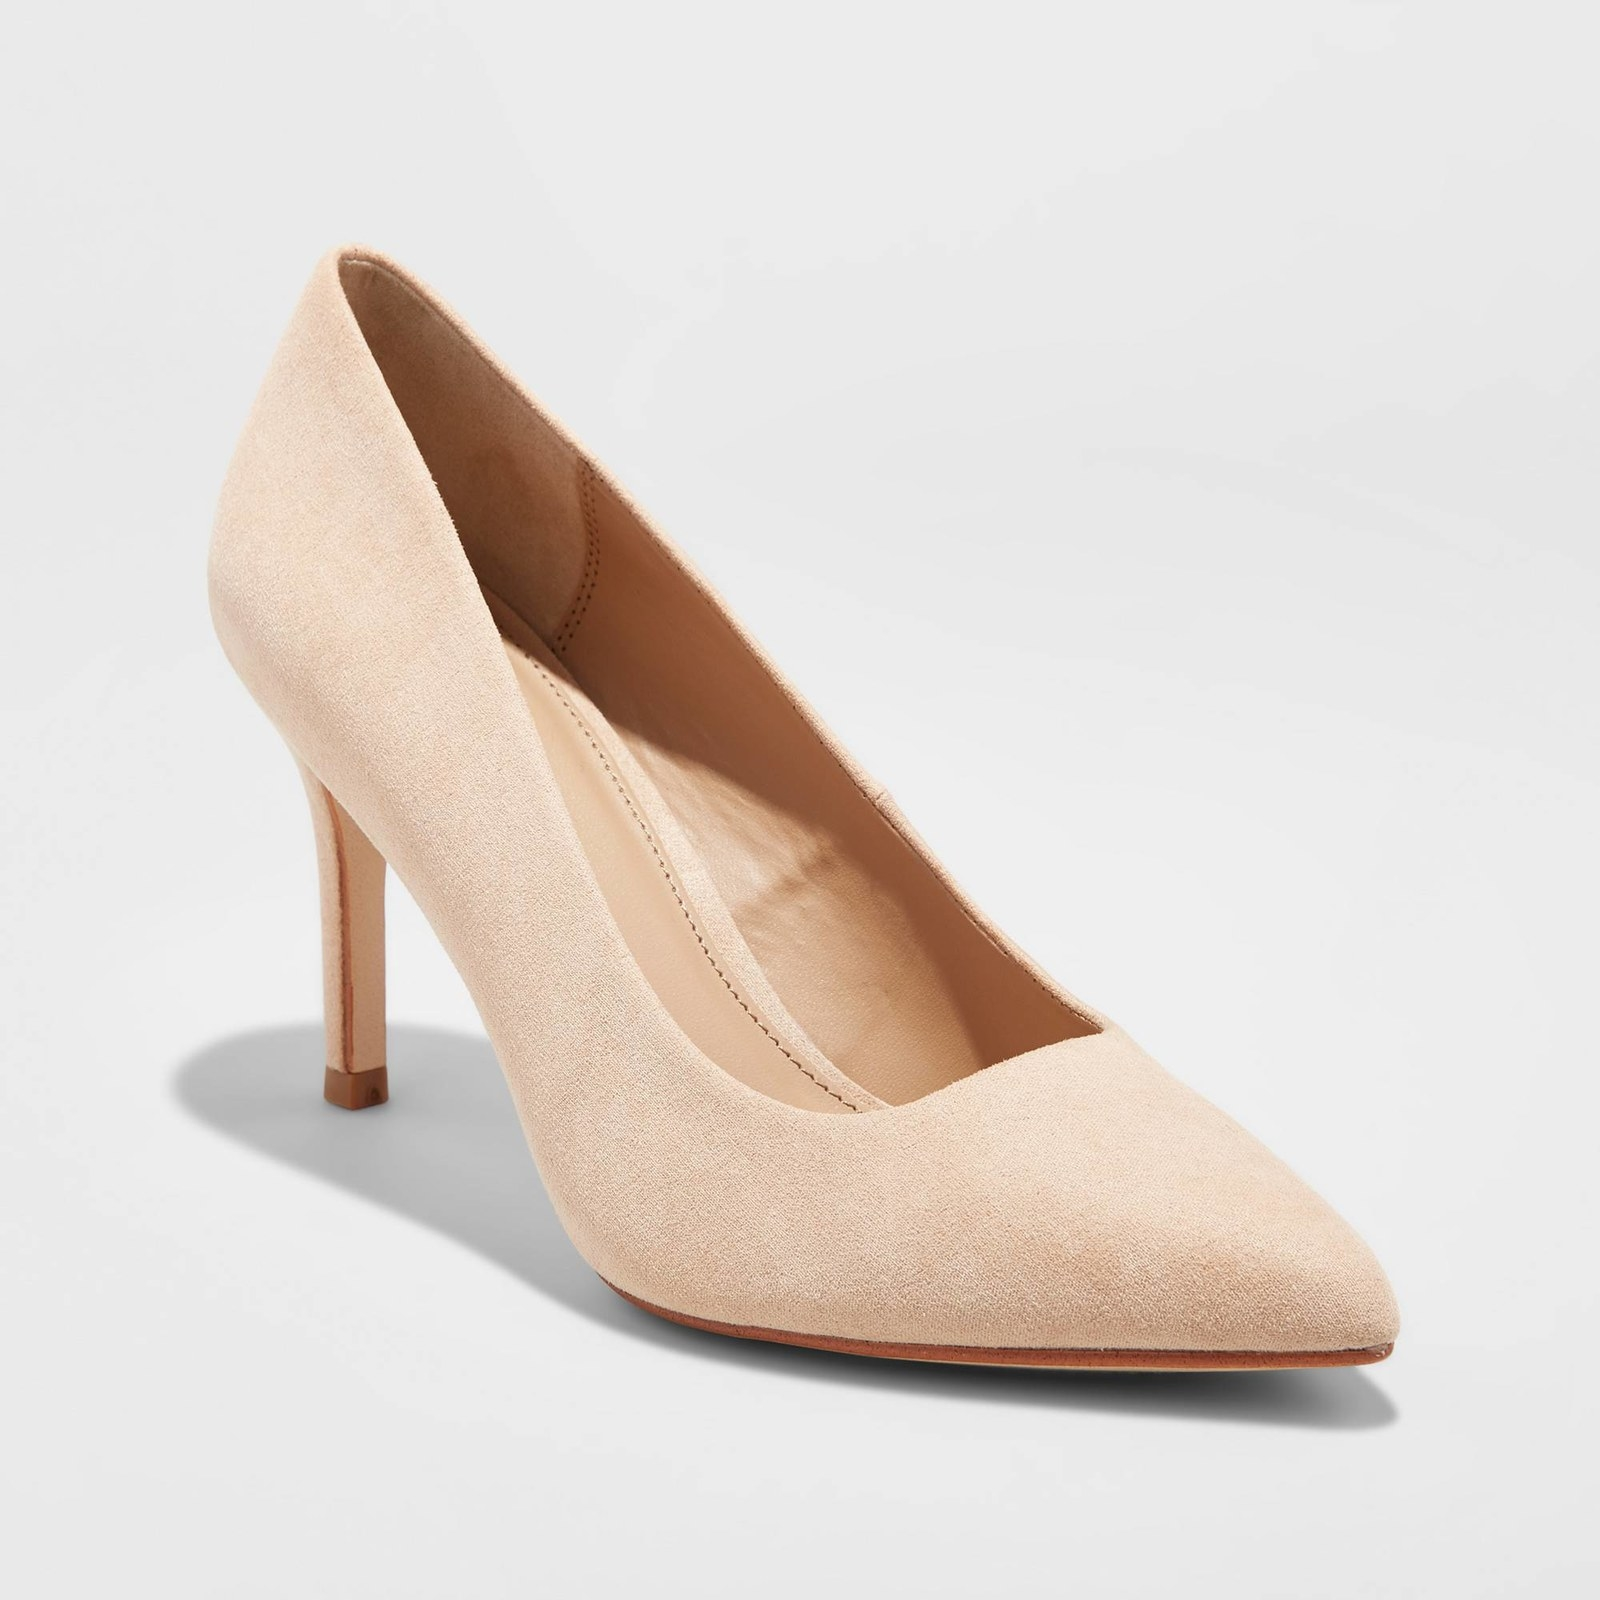 1e60486e226 Pointed toe pumps, available in six different shades of nude. These are a  must-have for every wardrobe.